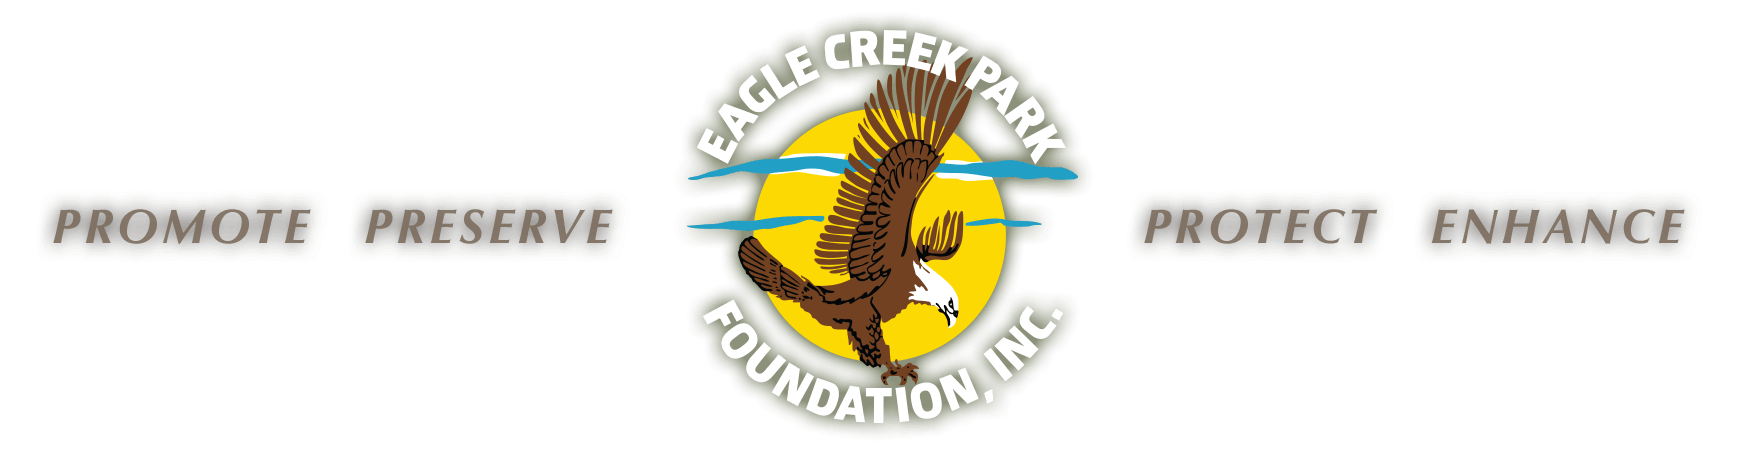 Eagle Creek Park Foundation